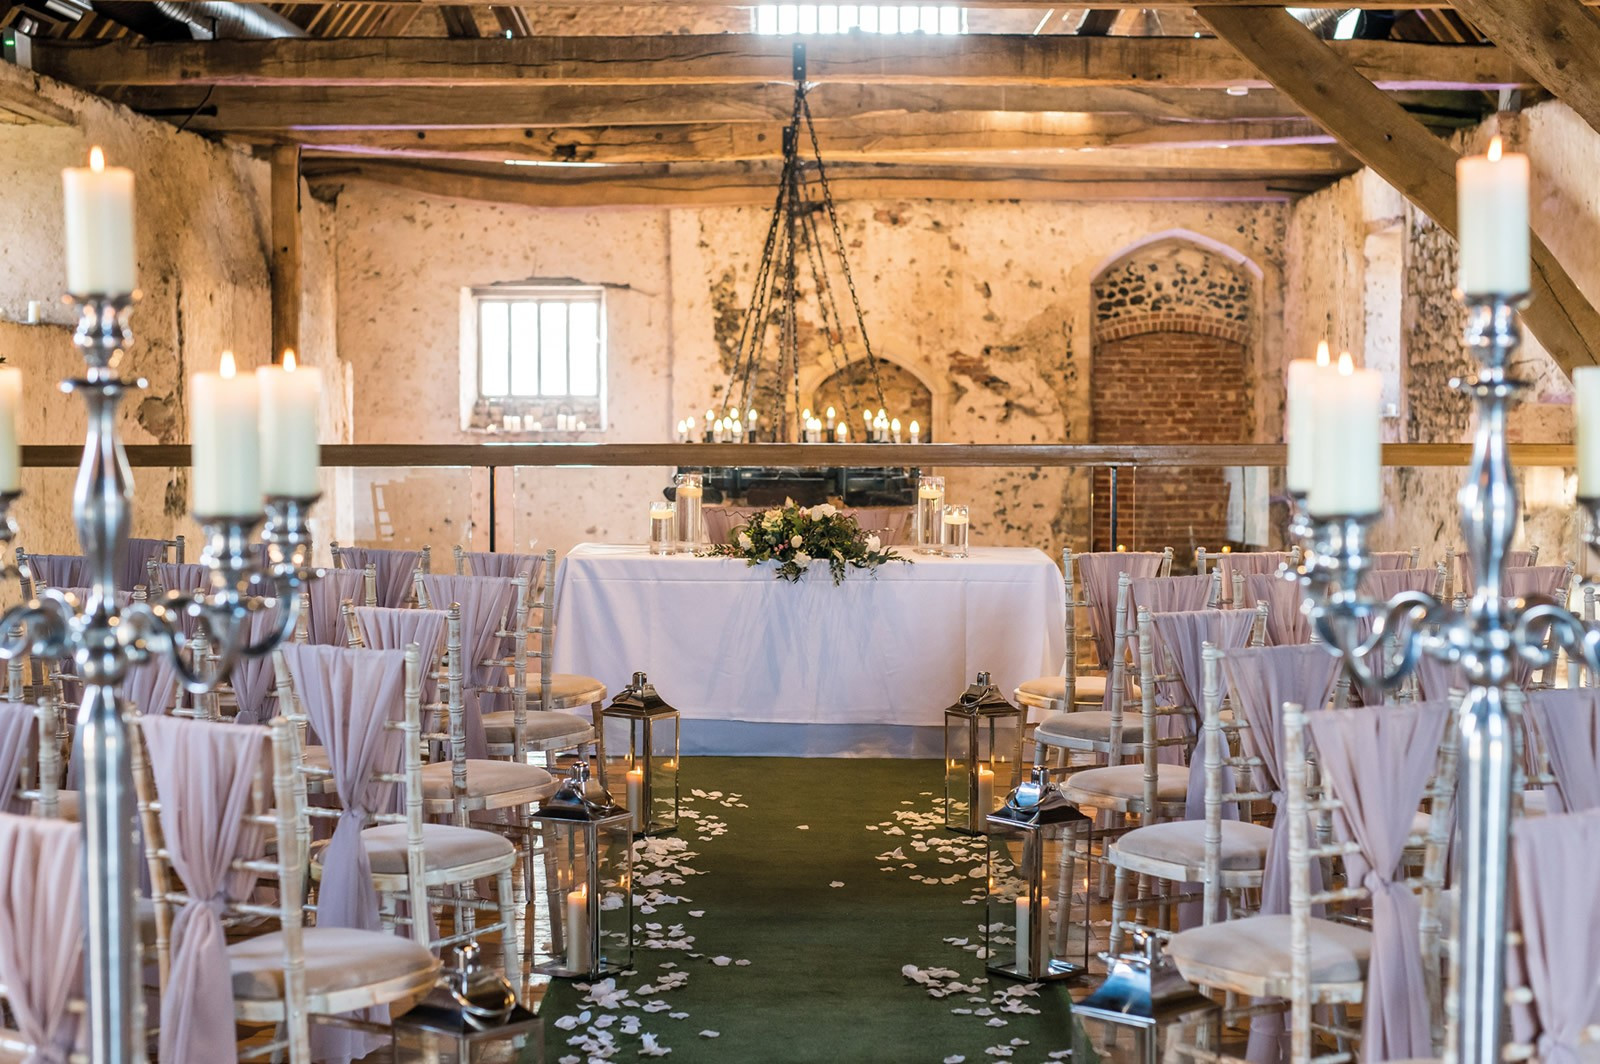 Brasted's and Brasted's | Barn Wedding Venues | WeddingPlanner.co.uk